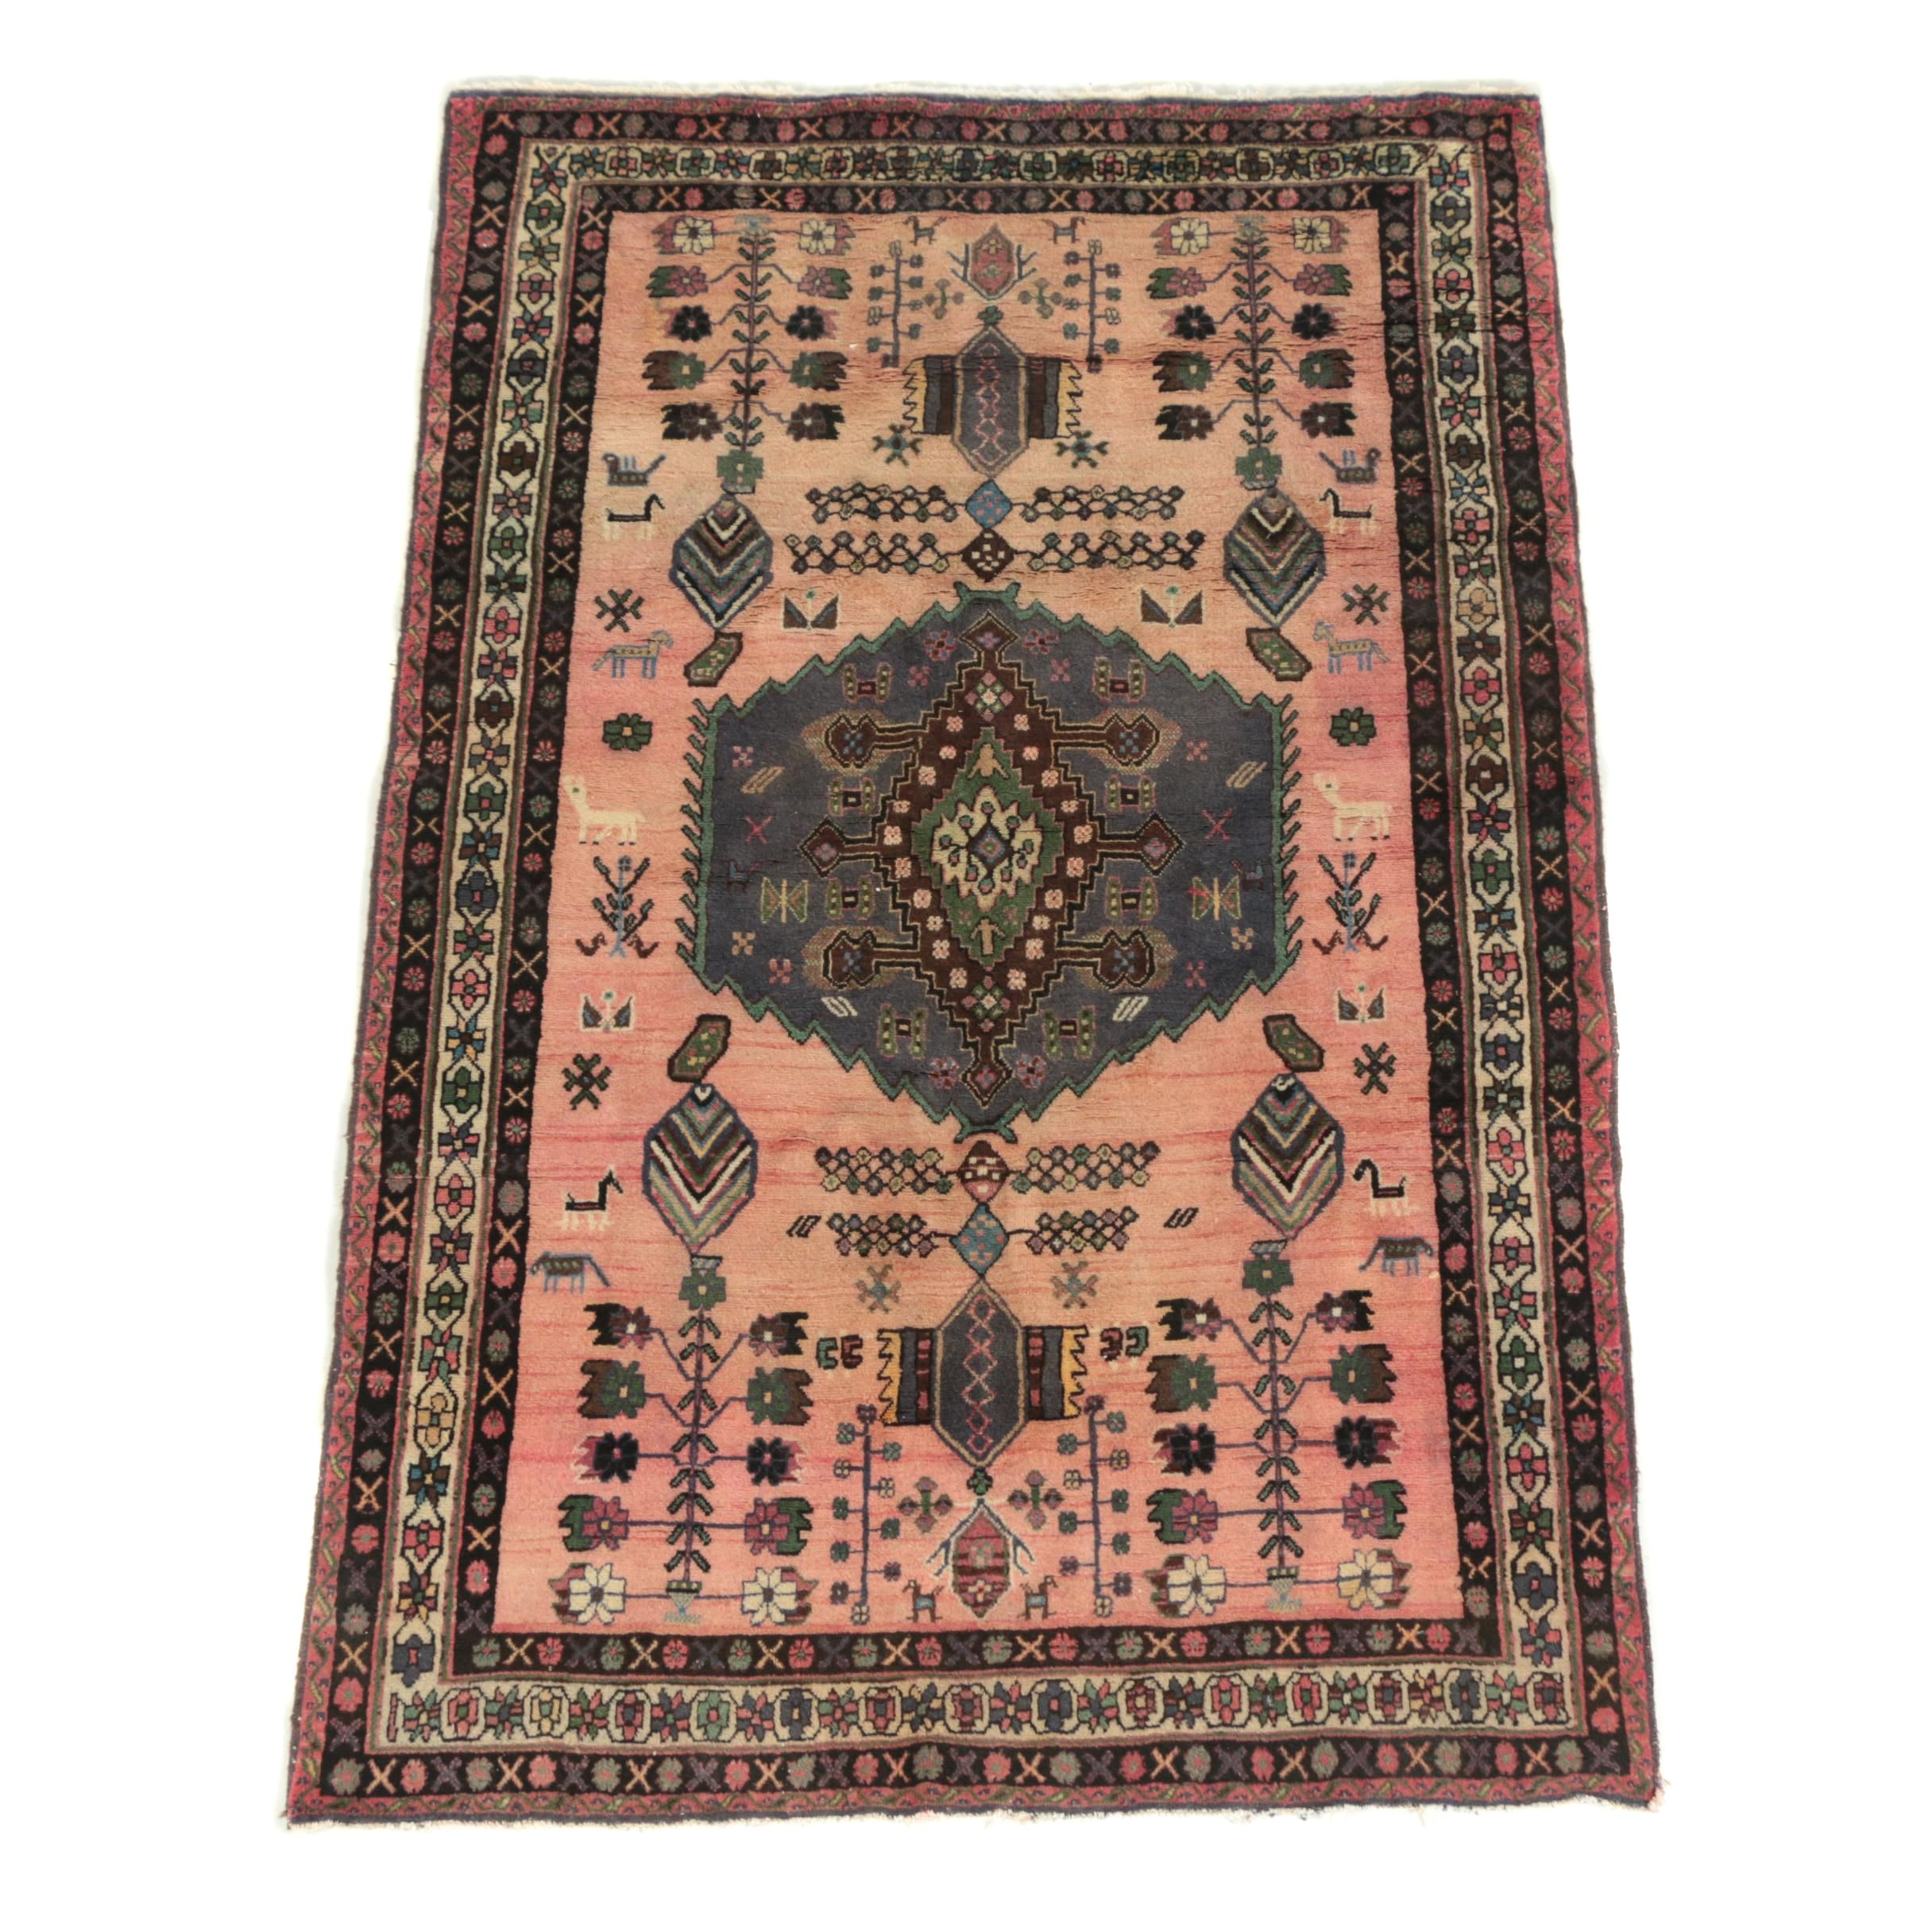 Hand-Knotted Persian Tribal Wool Area Rug